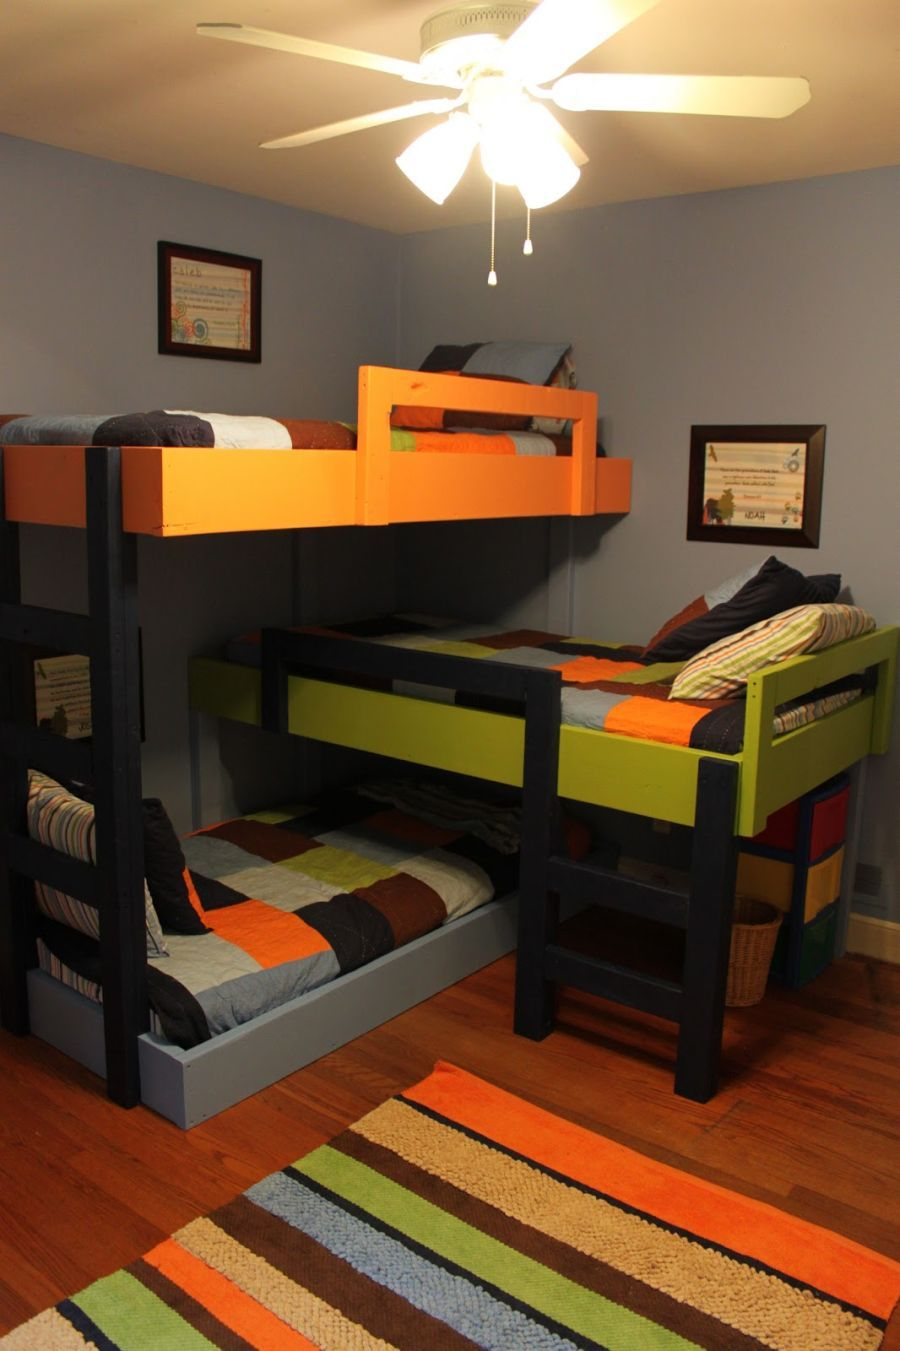 Saving Space And Staying Stylish With Triple Bunk Beds   Bunk bed ...